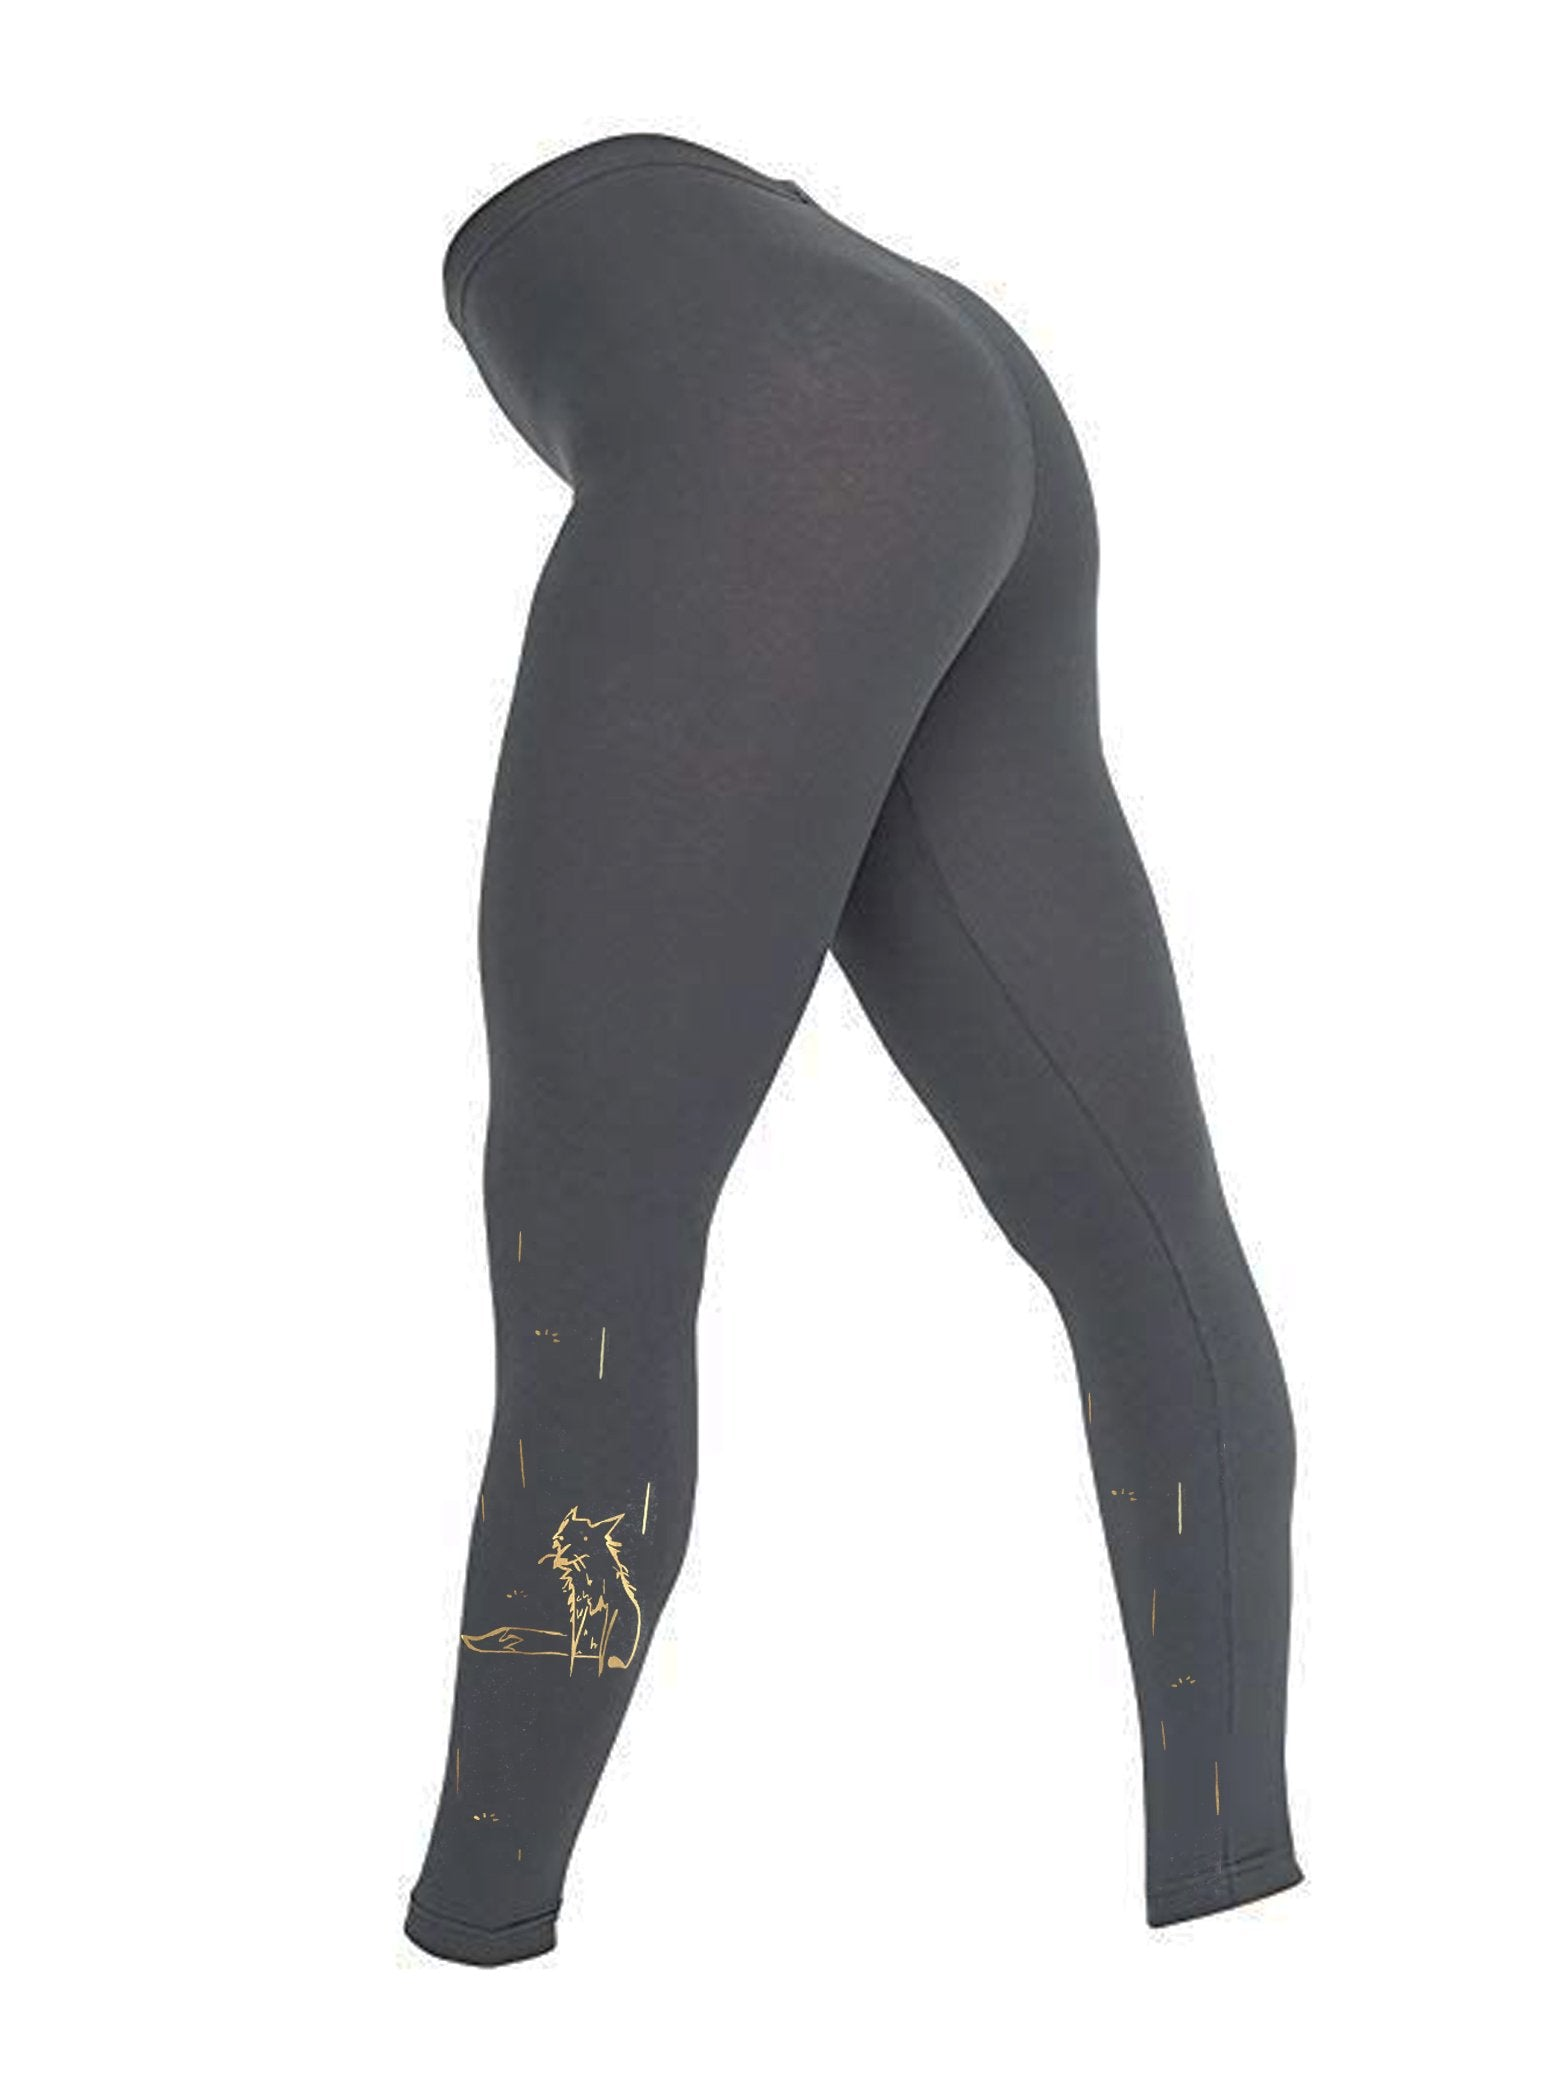 Leggings - Golden Fox Women Leggings, Asphalt Grey